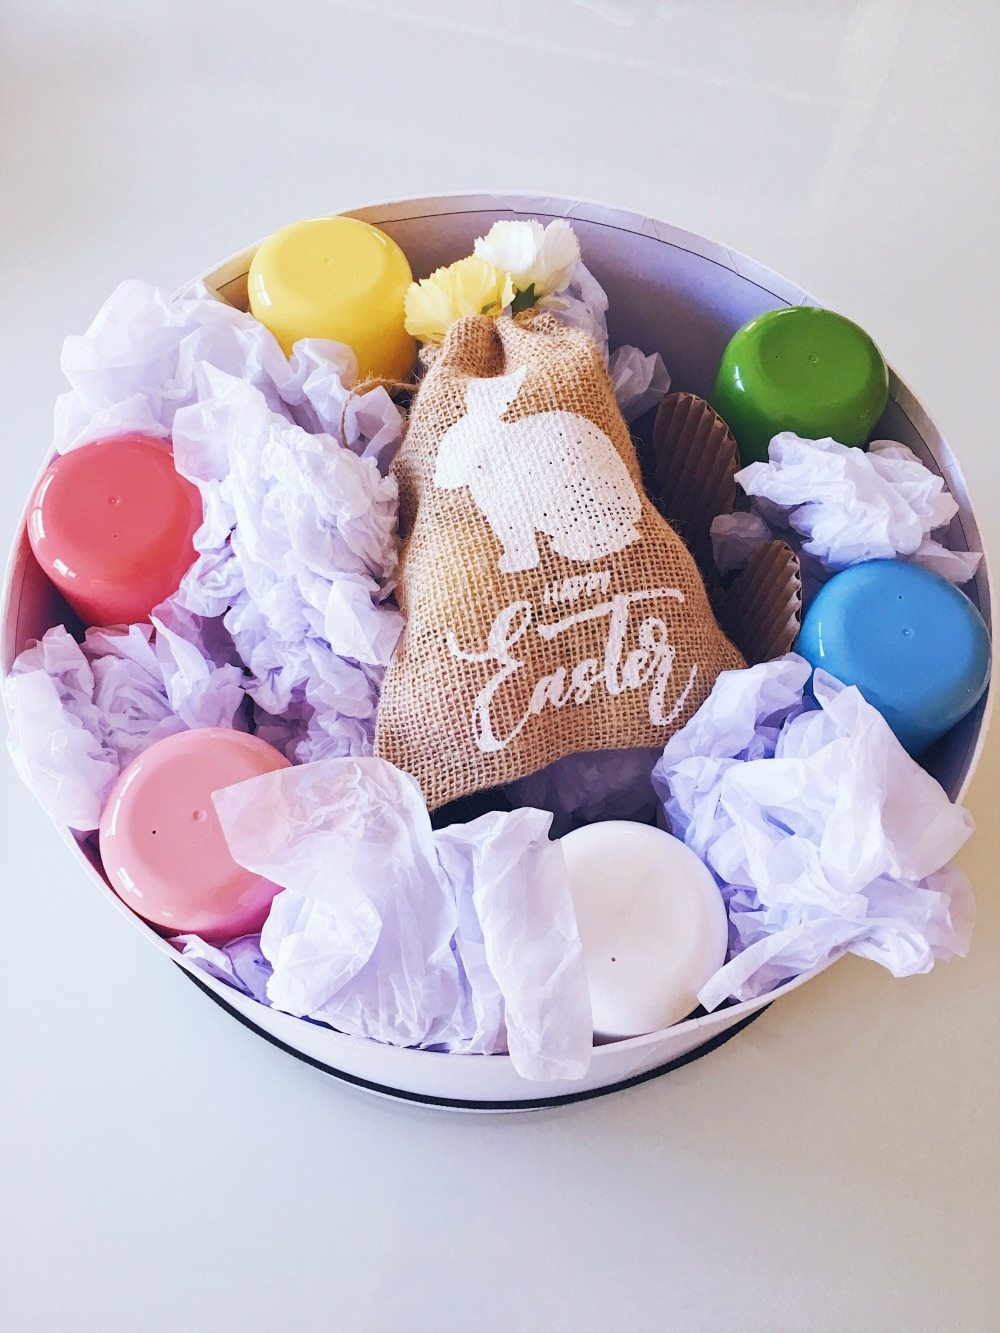 An Easter DIY from White Knight - lovefrommim.com Love from Mim, Easter, Easter Parade, Easter Hat, DIY Easter Hat, Easter Crafts, Easter Craft Idea, How to make an Easter Hat, Easter DIY, Kids Crafts, Kids Easter Crafts, Kids Activities